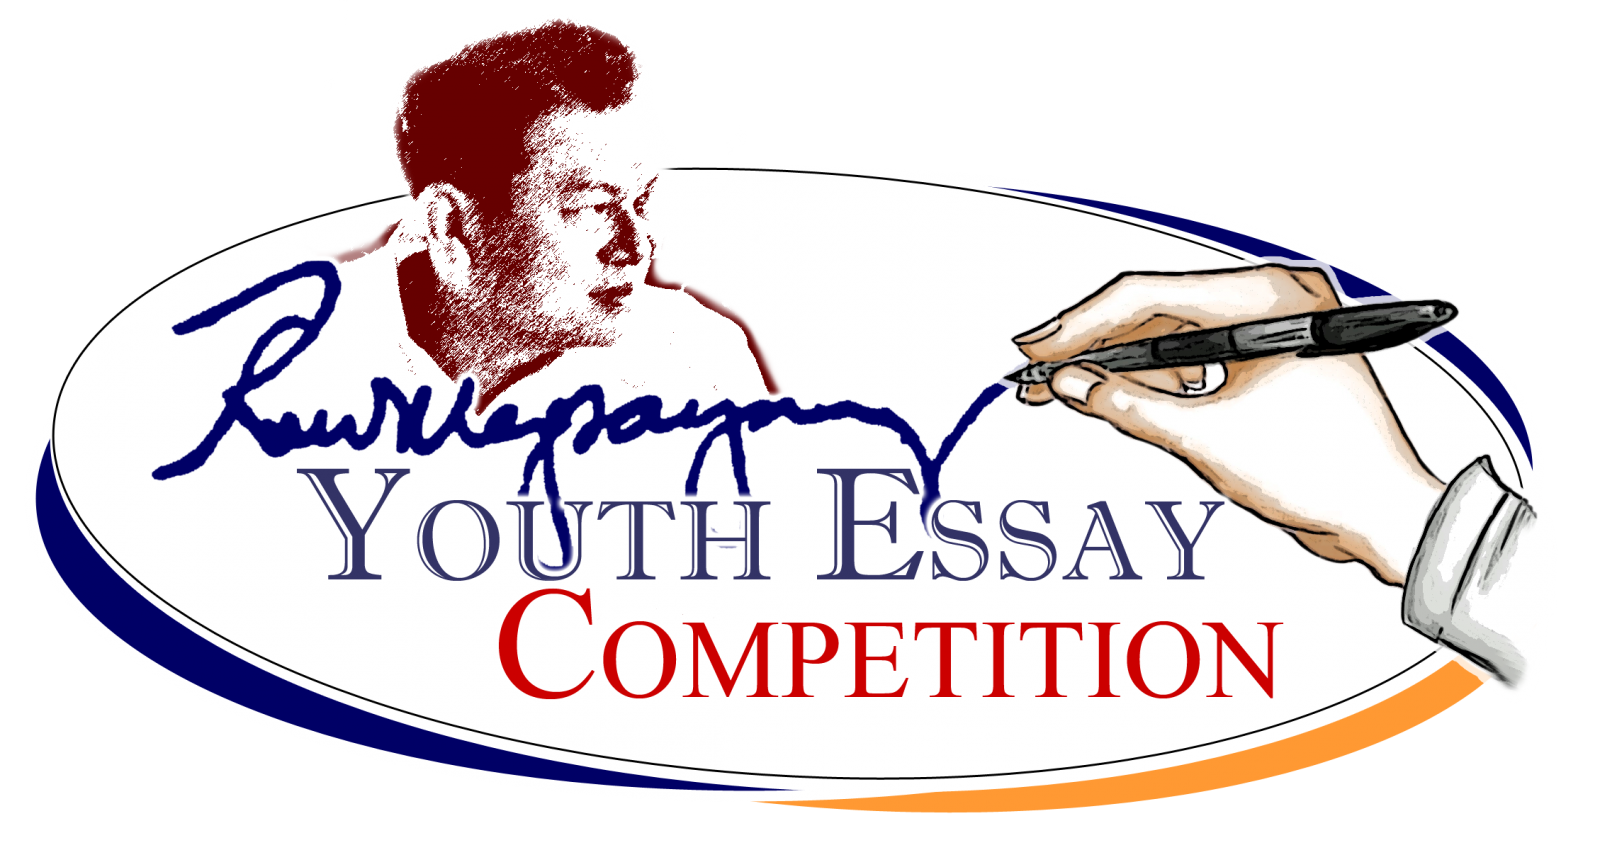 international essay contest unesco culture essay for you are invited to harness the world are now available harness the youth from all the purpose of the goi peace foundation and poetry contest has